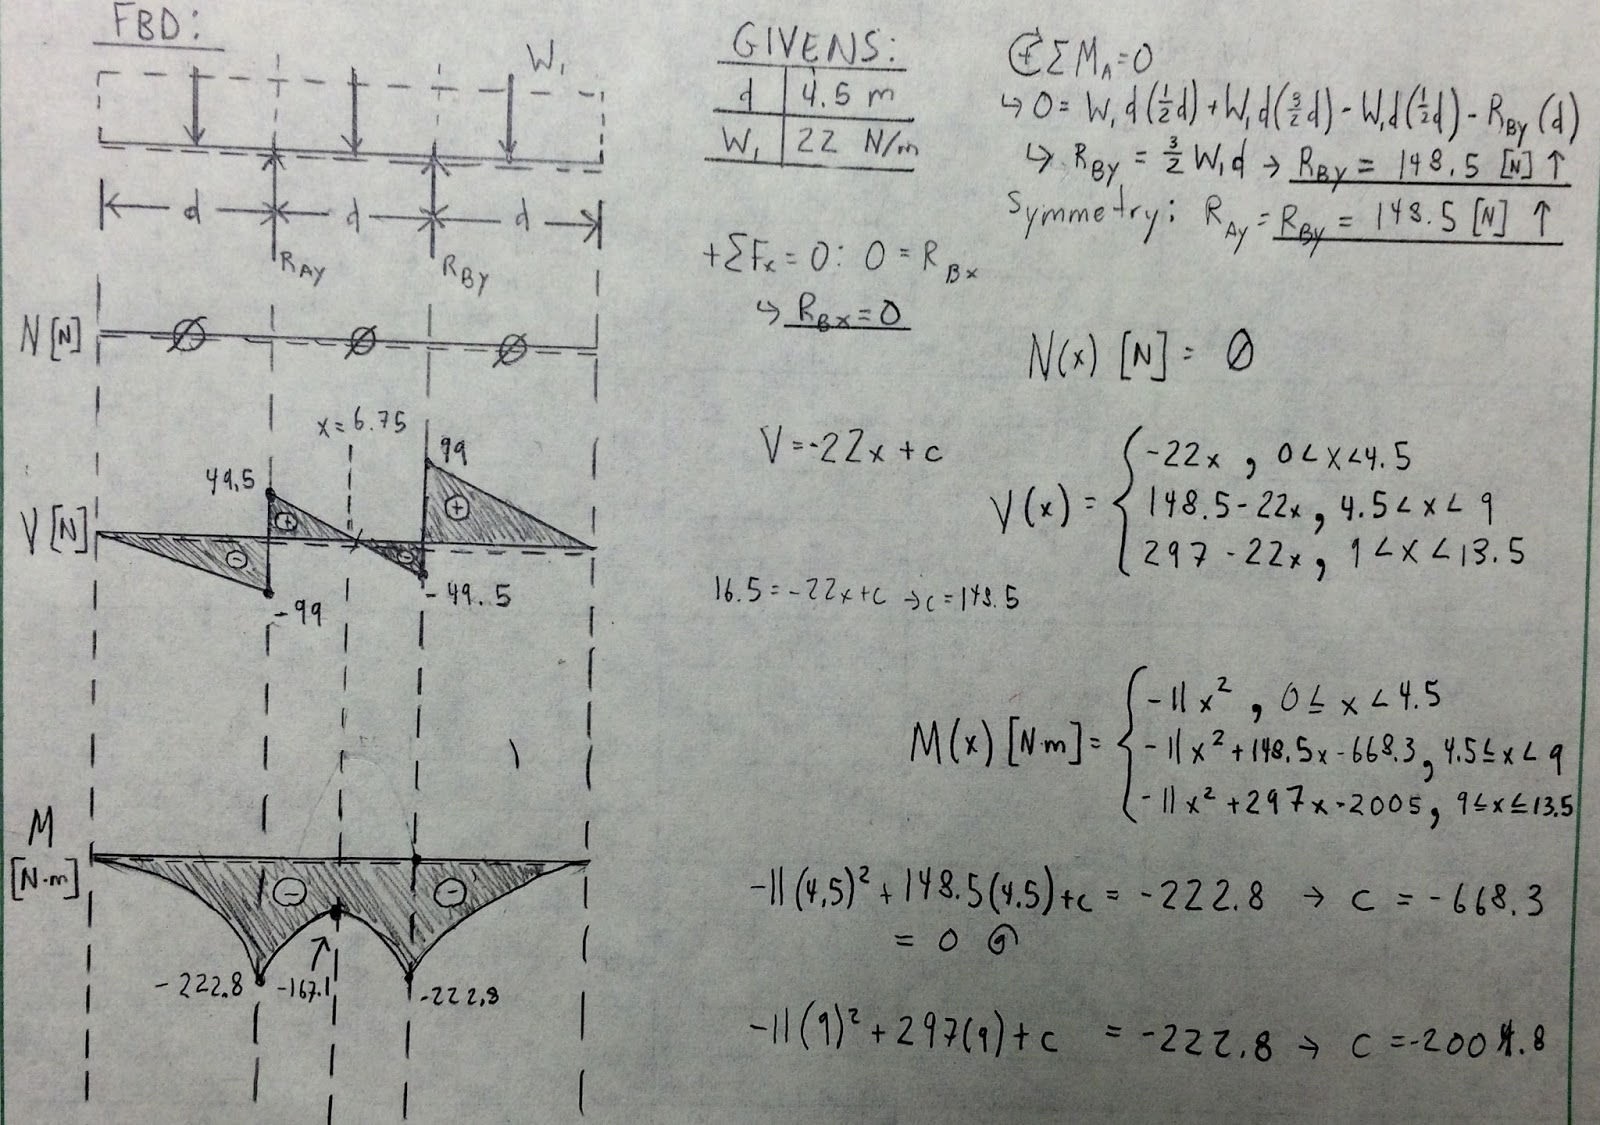 Engineering Mechanics Statics Problem Solutions And Walkthroughs Draw The Bending Moment Diagram Shear Force Mechanical 5 12 1 Question Internal Diagrams